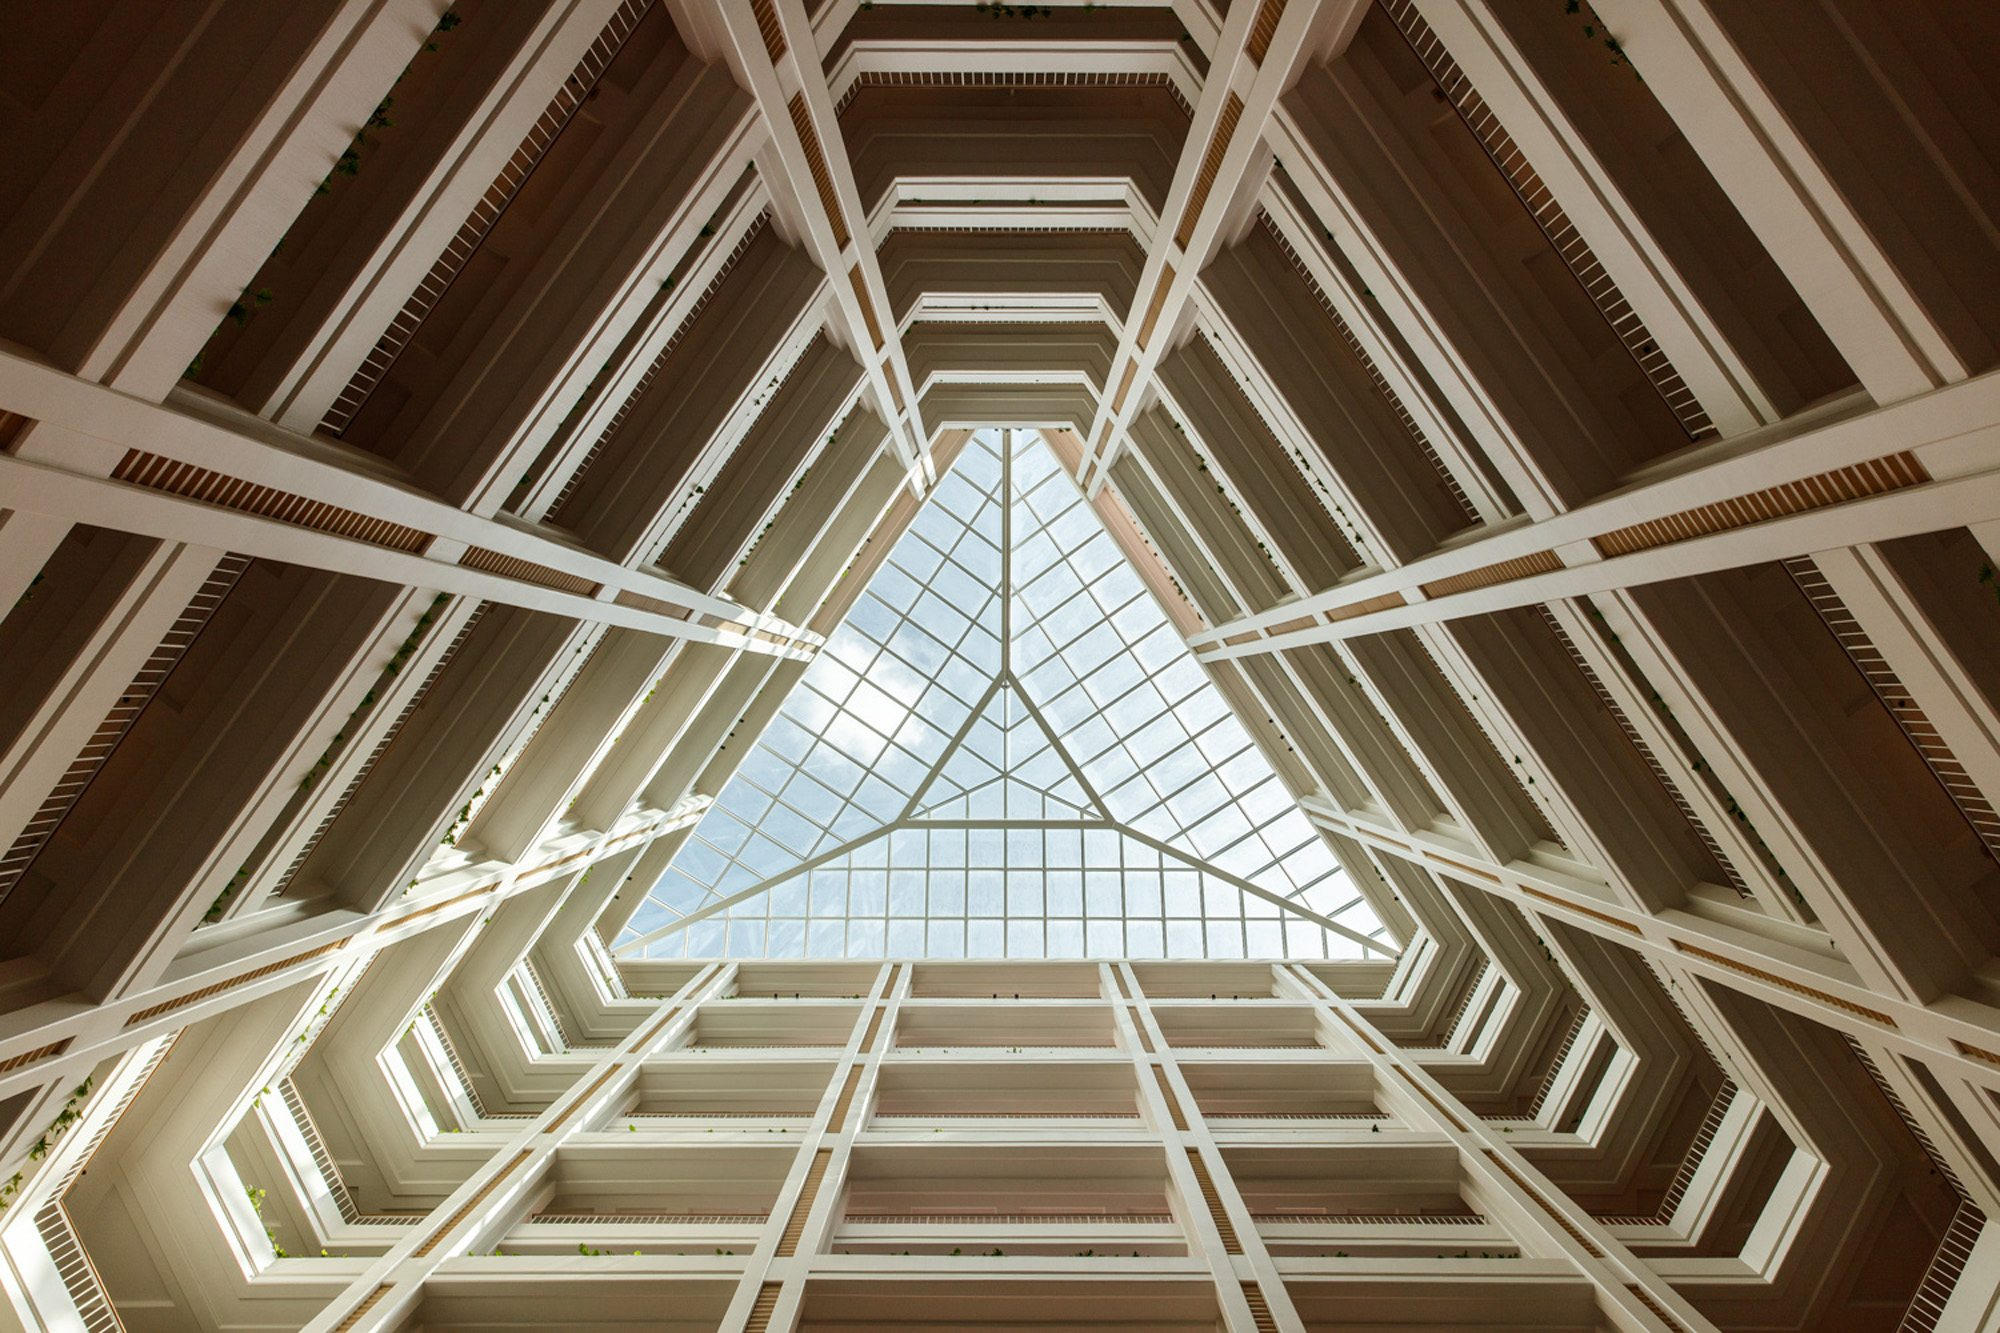 Triangular skylight window Oahu